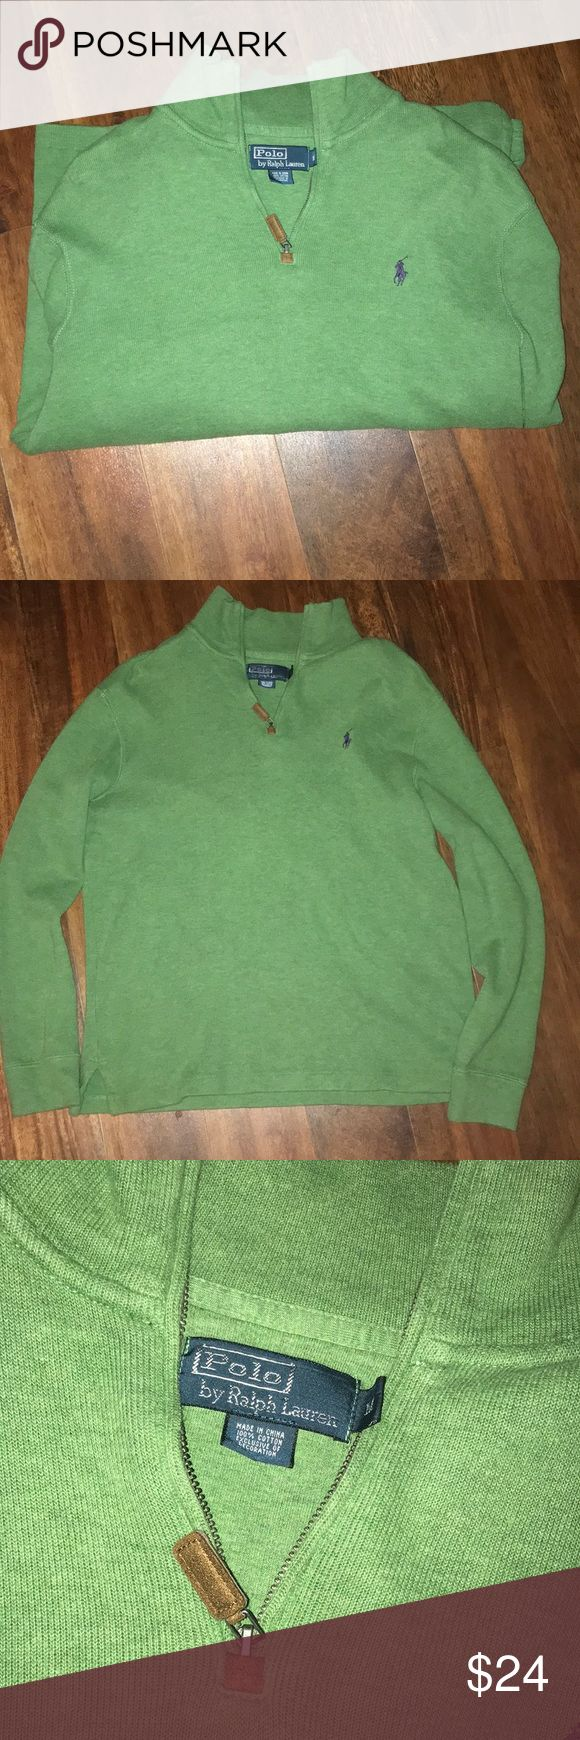 Polo pullover Men's polo pullover, zipper, light green, smoke free home, great condition Polo by Ralph Lauren Sweaters Zip Up